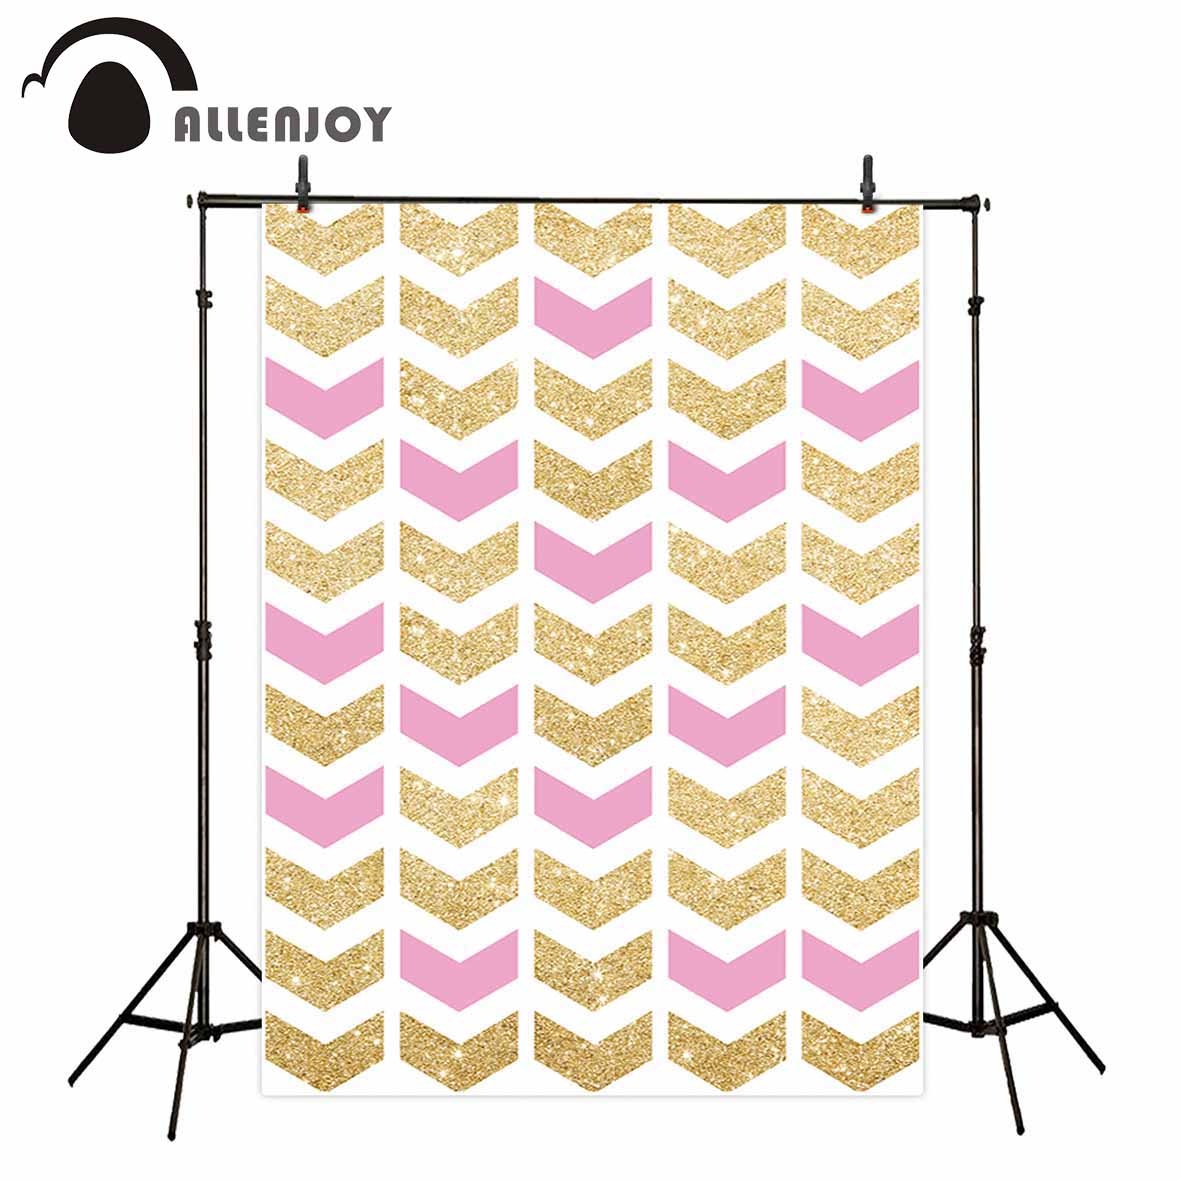 Allenjoy vinyl photographic background Pink golden scales repeat customized new backdrop photocall photo printer customize